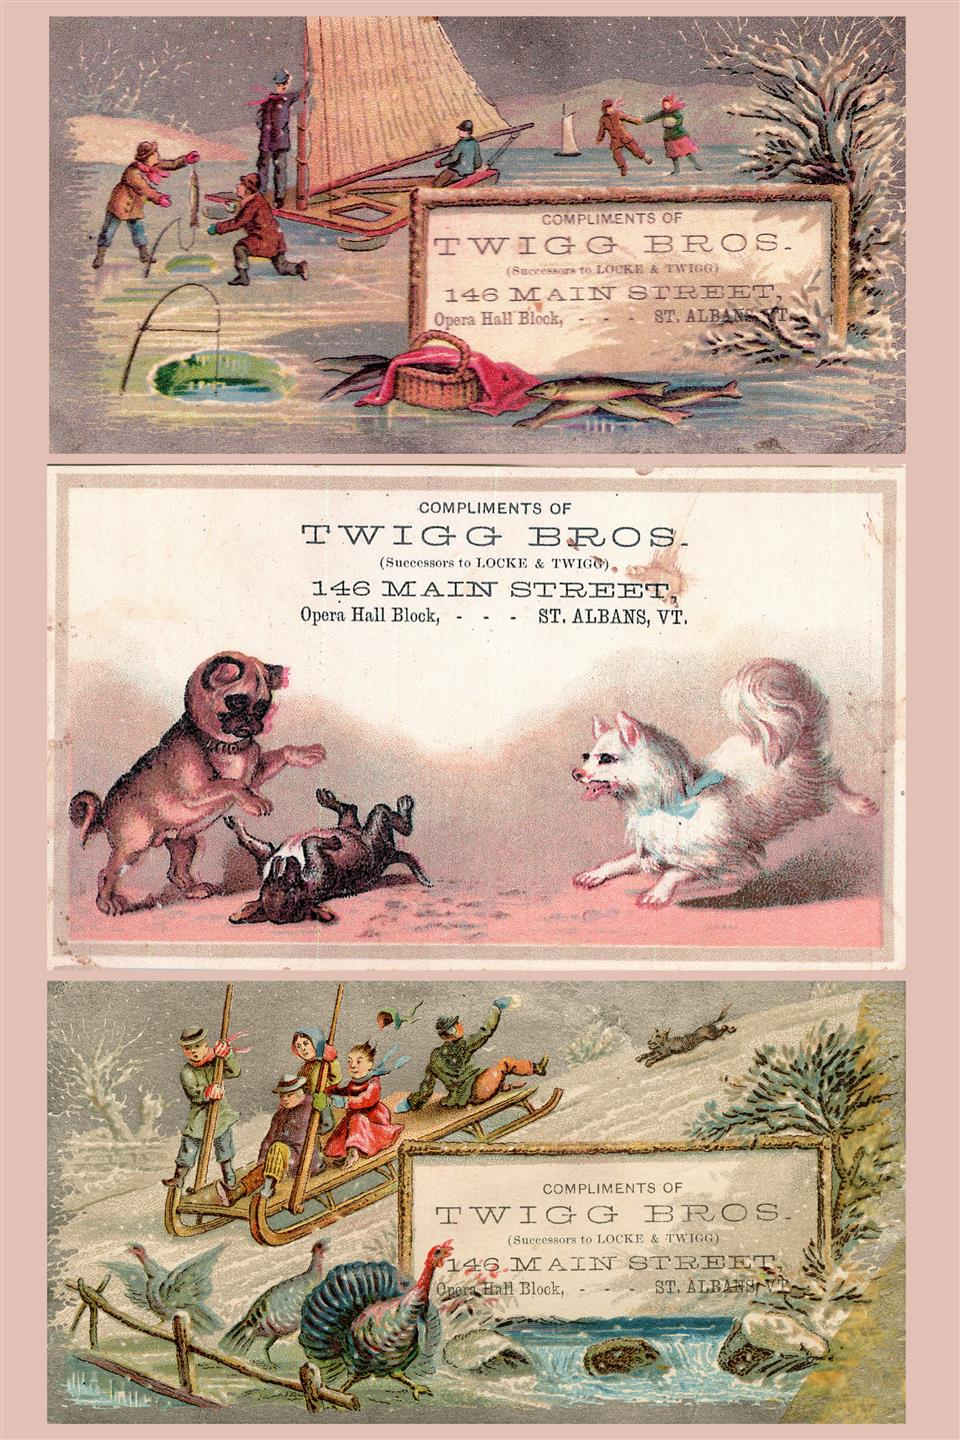 an old advertisement for twiggs, featuring illustrations of various dogs